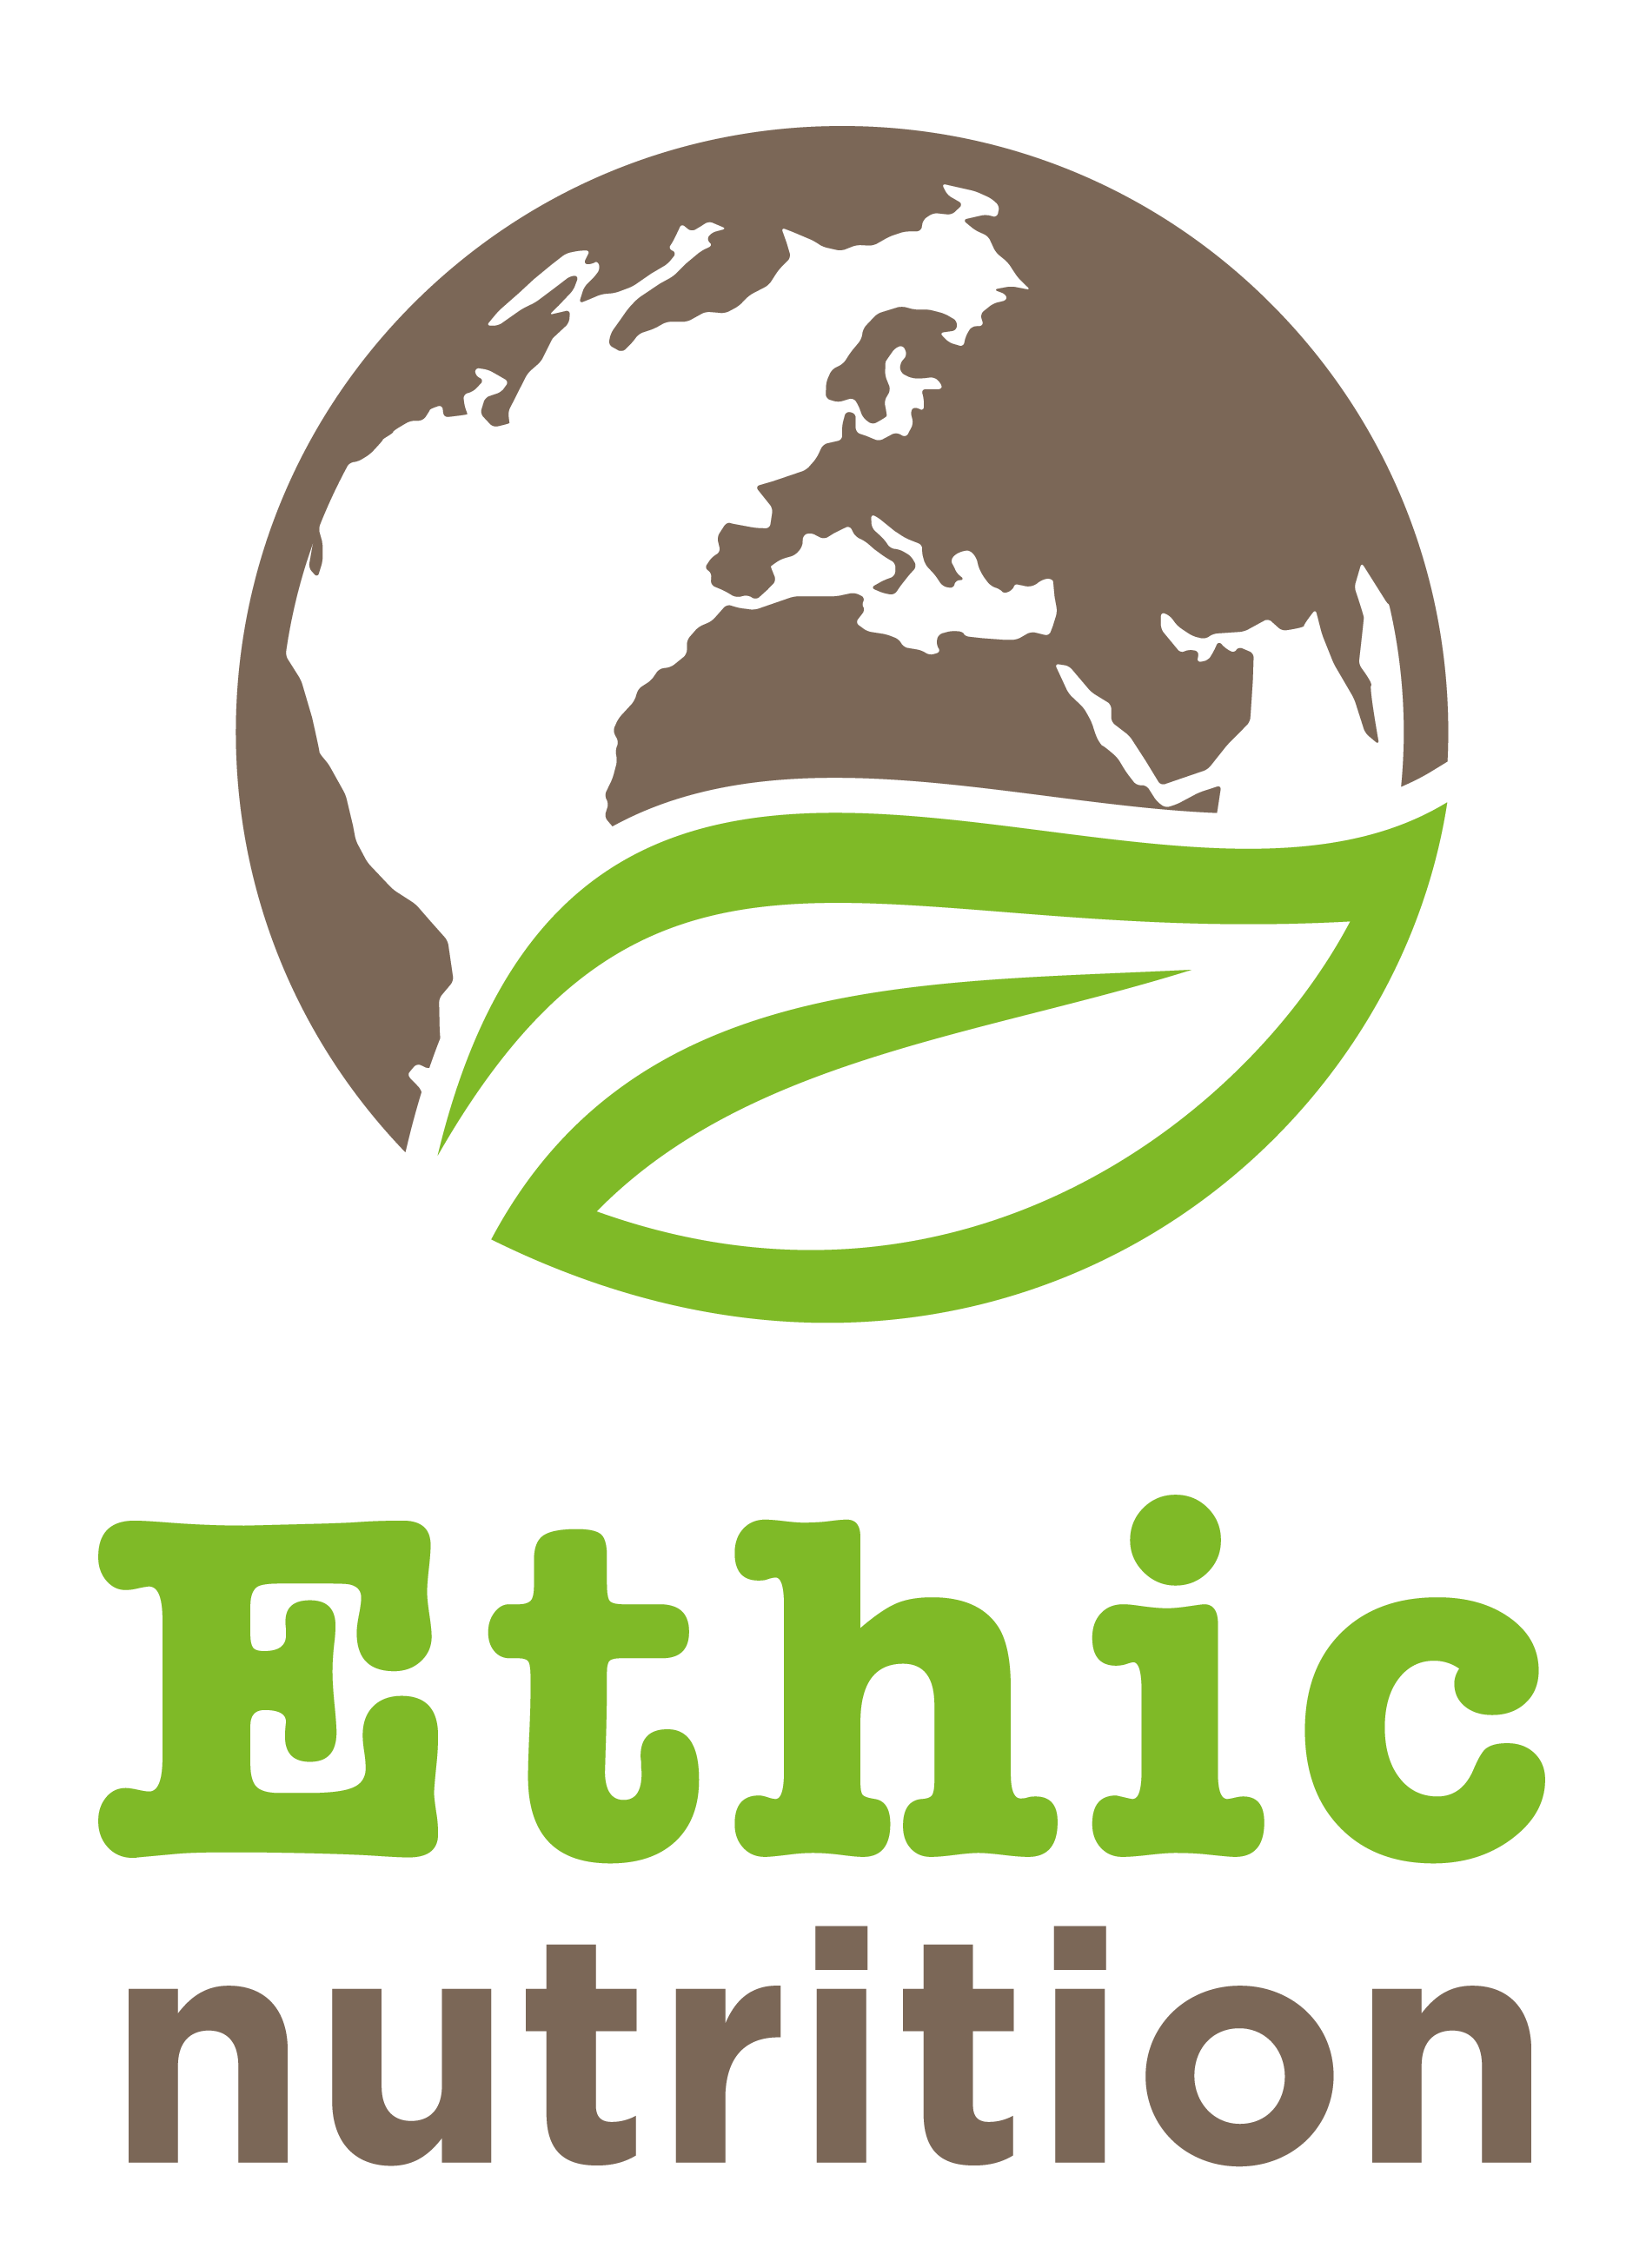 Ethic Nutrition